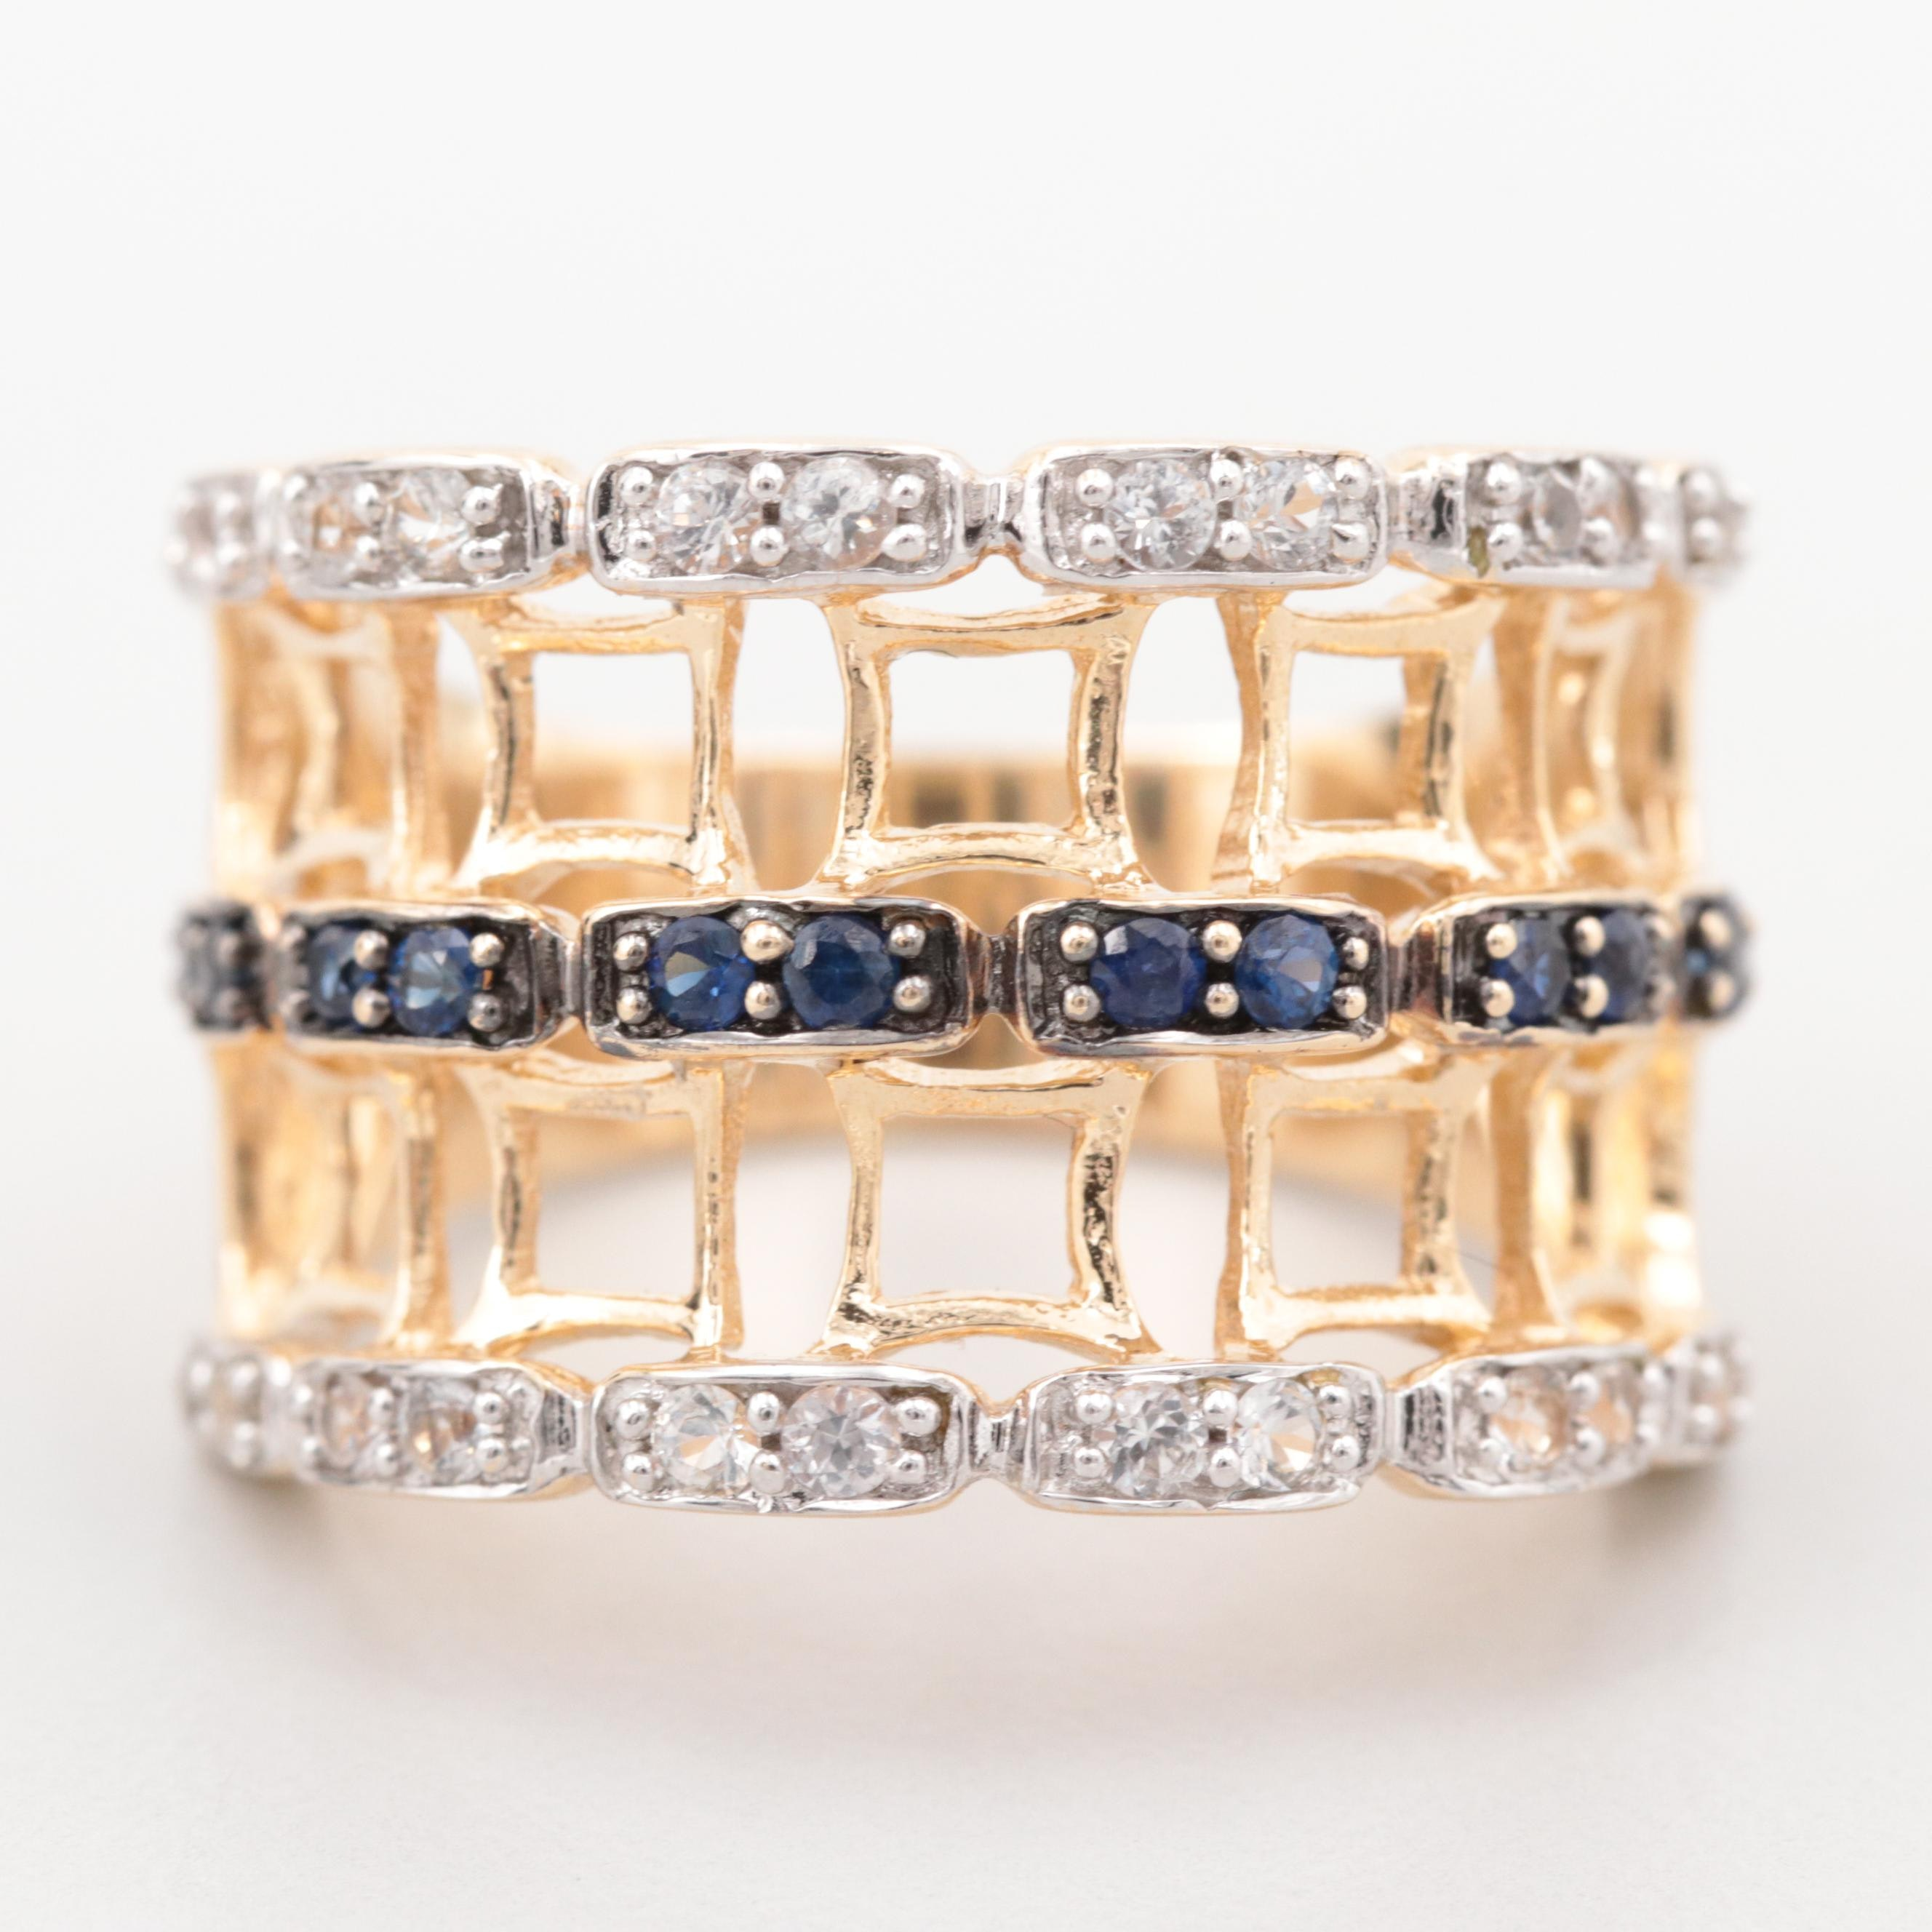 14K Yellow Gold Blue and White Sapphire Ring with Openwork Band